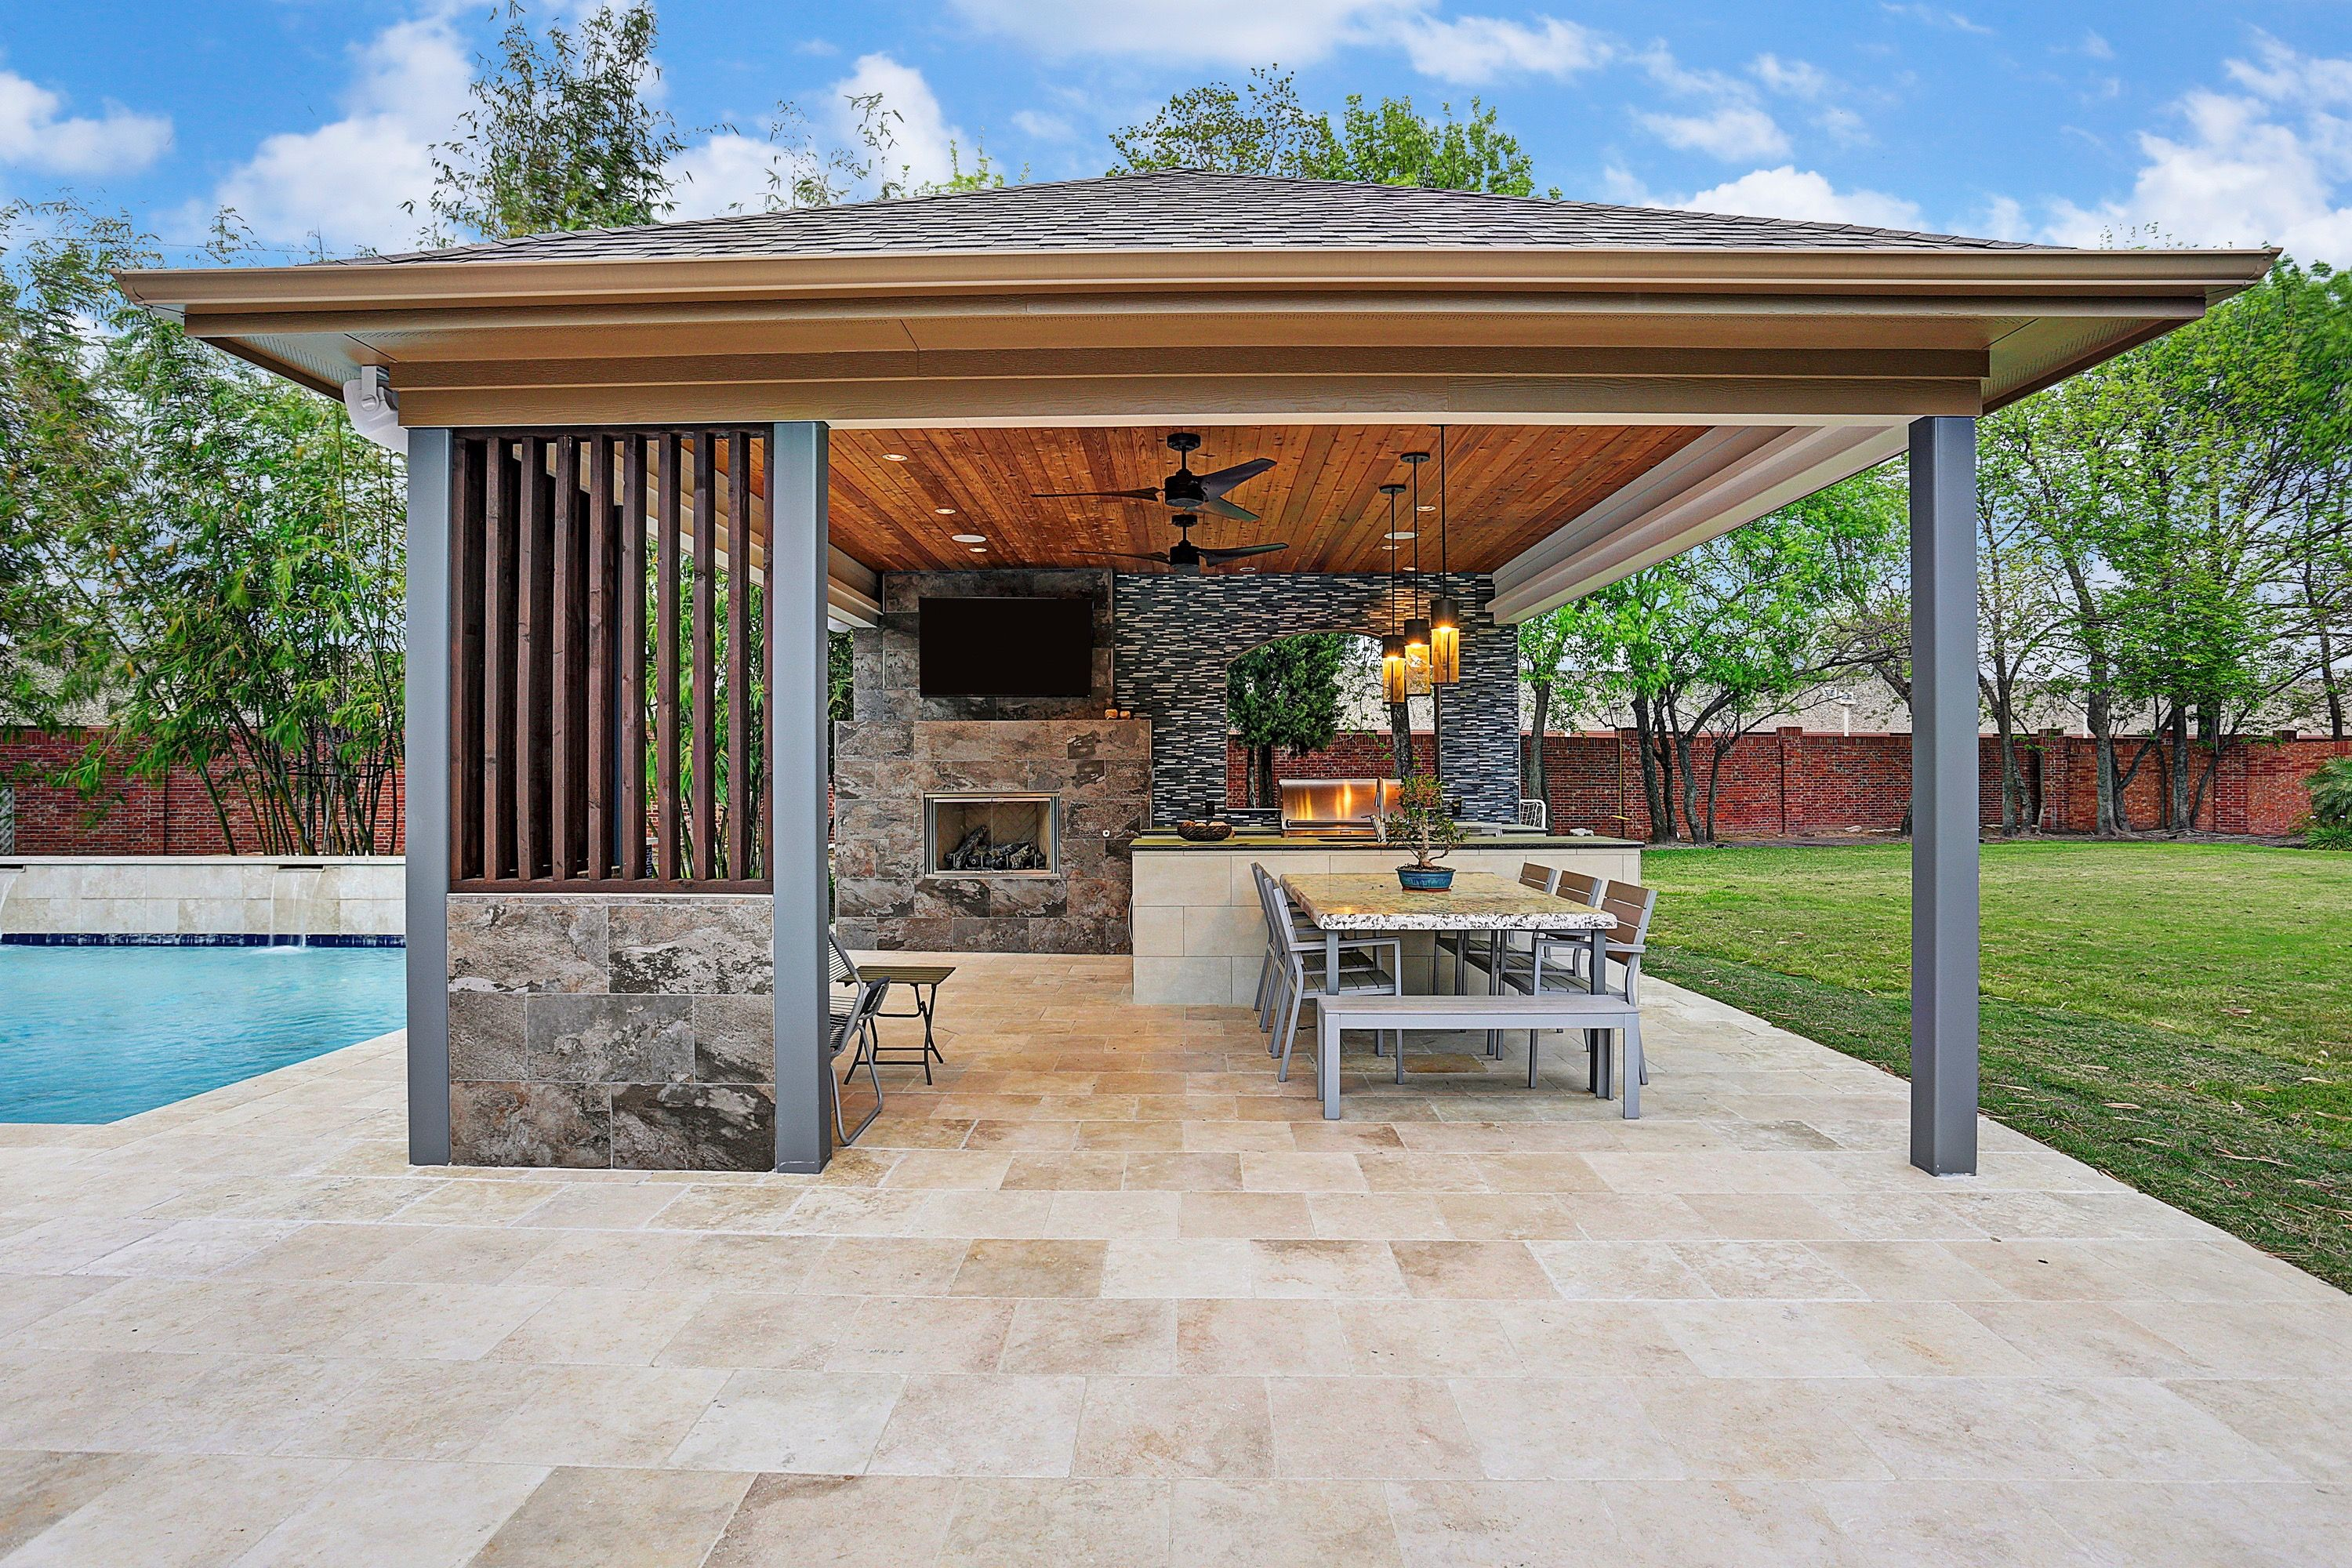 Free Standing Patio Cover Pool House Outdoor Living Outdoor Kitchen Tongue And Groove Ceiling Contemporary Outdoor Fire Patio Patio Design Outdoor Living